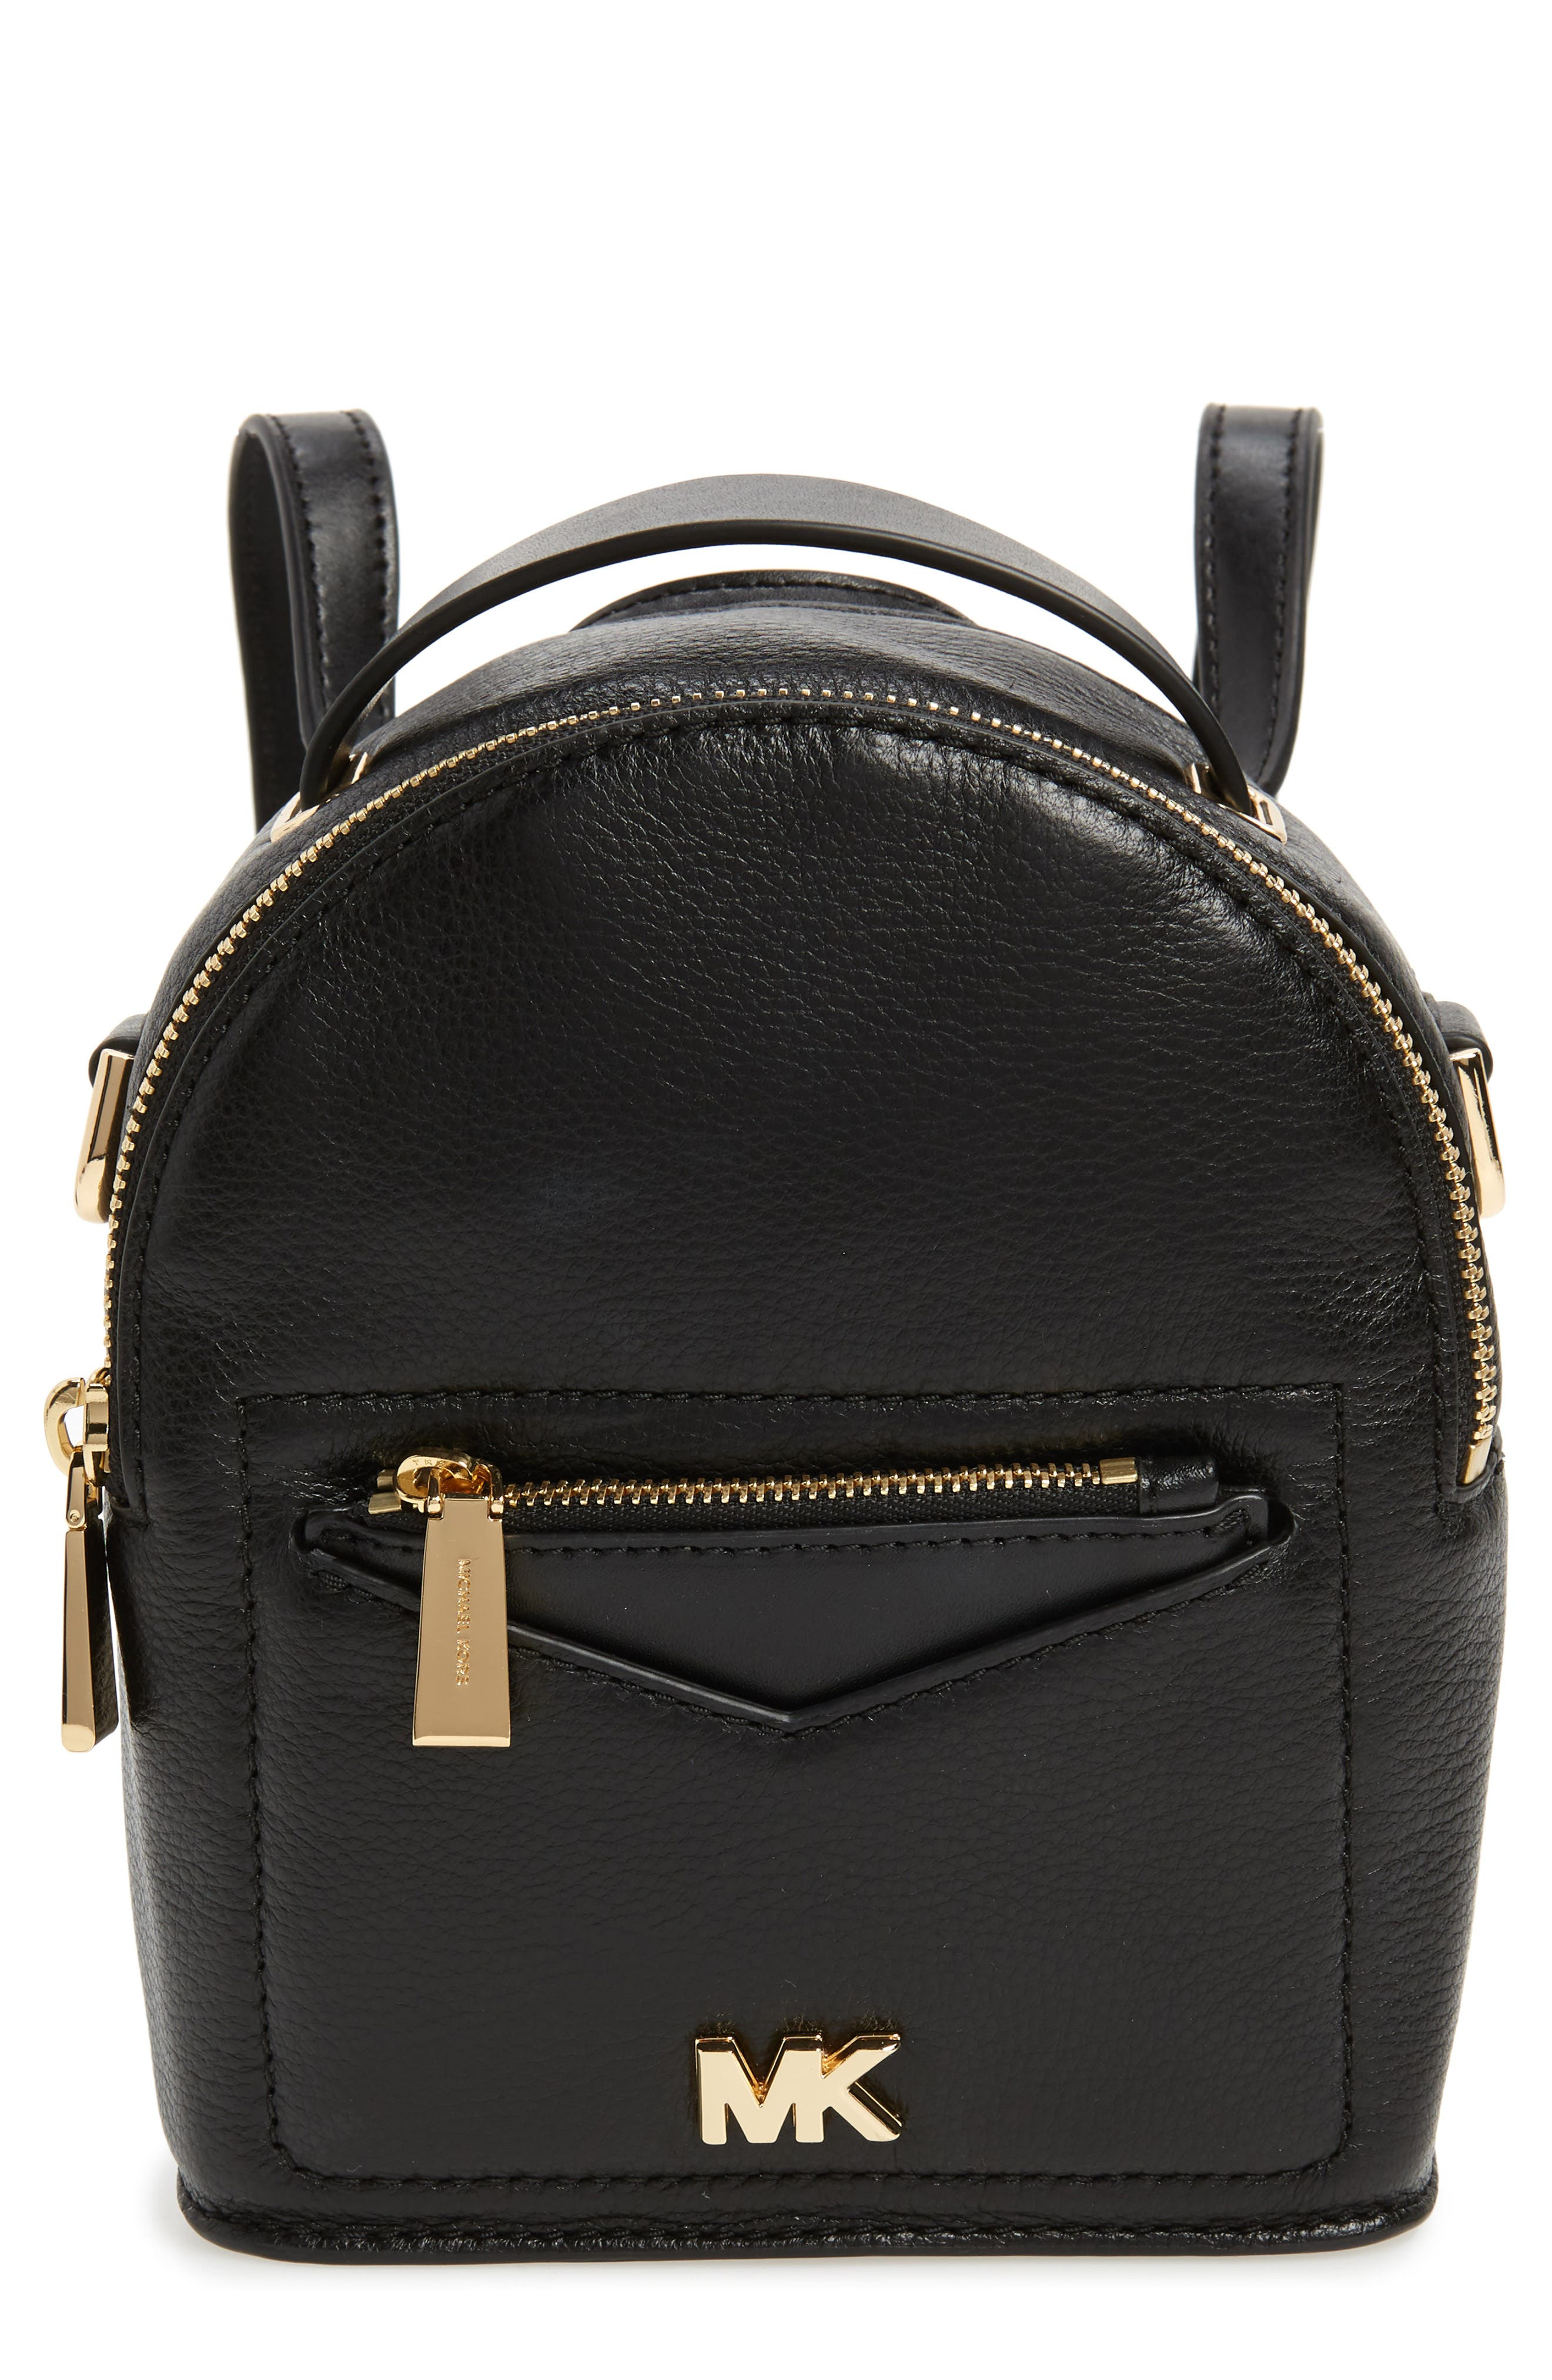 X-Small Convertible Leather Backpack,                         Main,                         color, 001